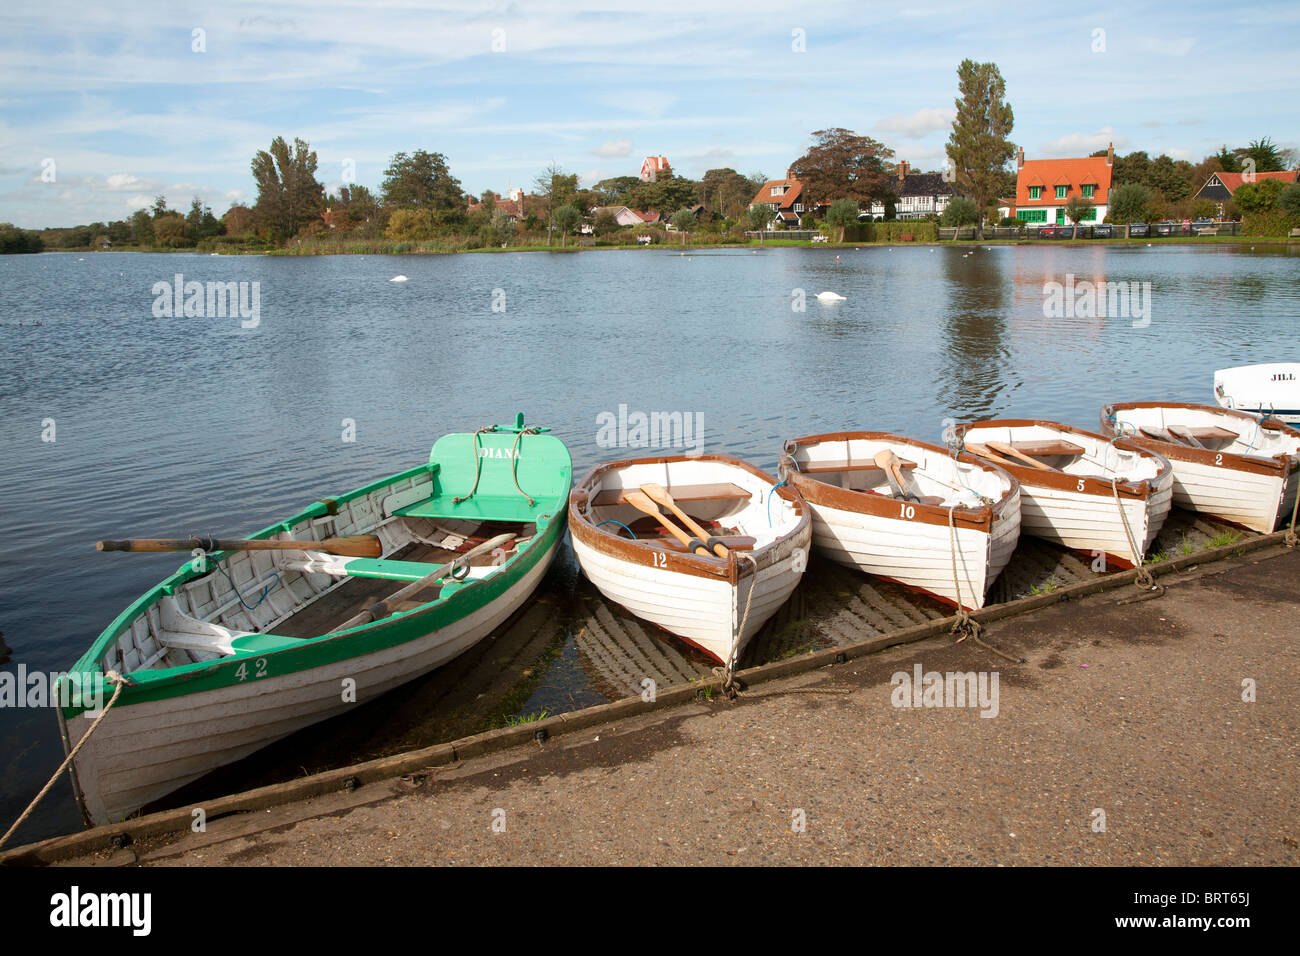 Rowing boats the Meare, Thorpeness, Suffolk, England - Stock Image